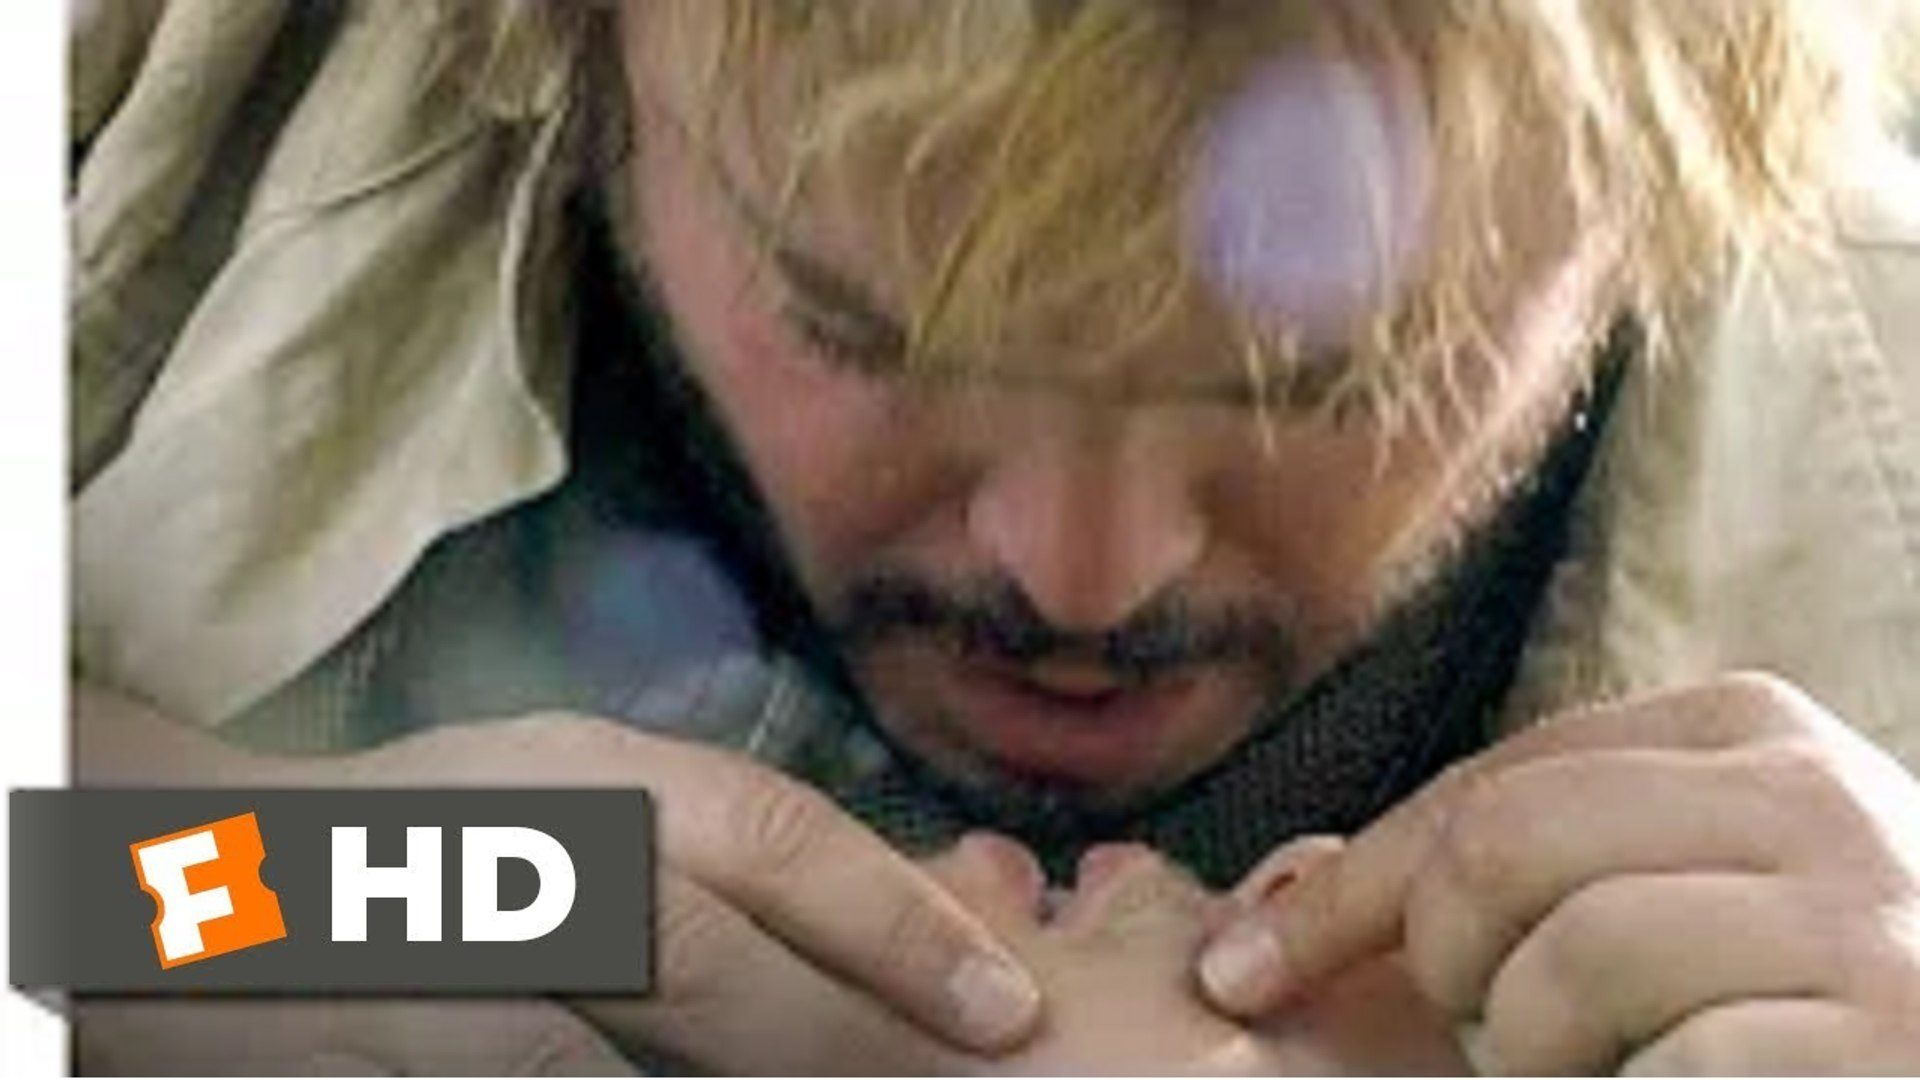 Jumanji 2 - Welcome to the Jungle (2017) - CPR Excitement Scene (8-10) - Hollywood Movies English fu